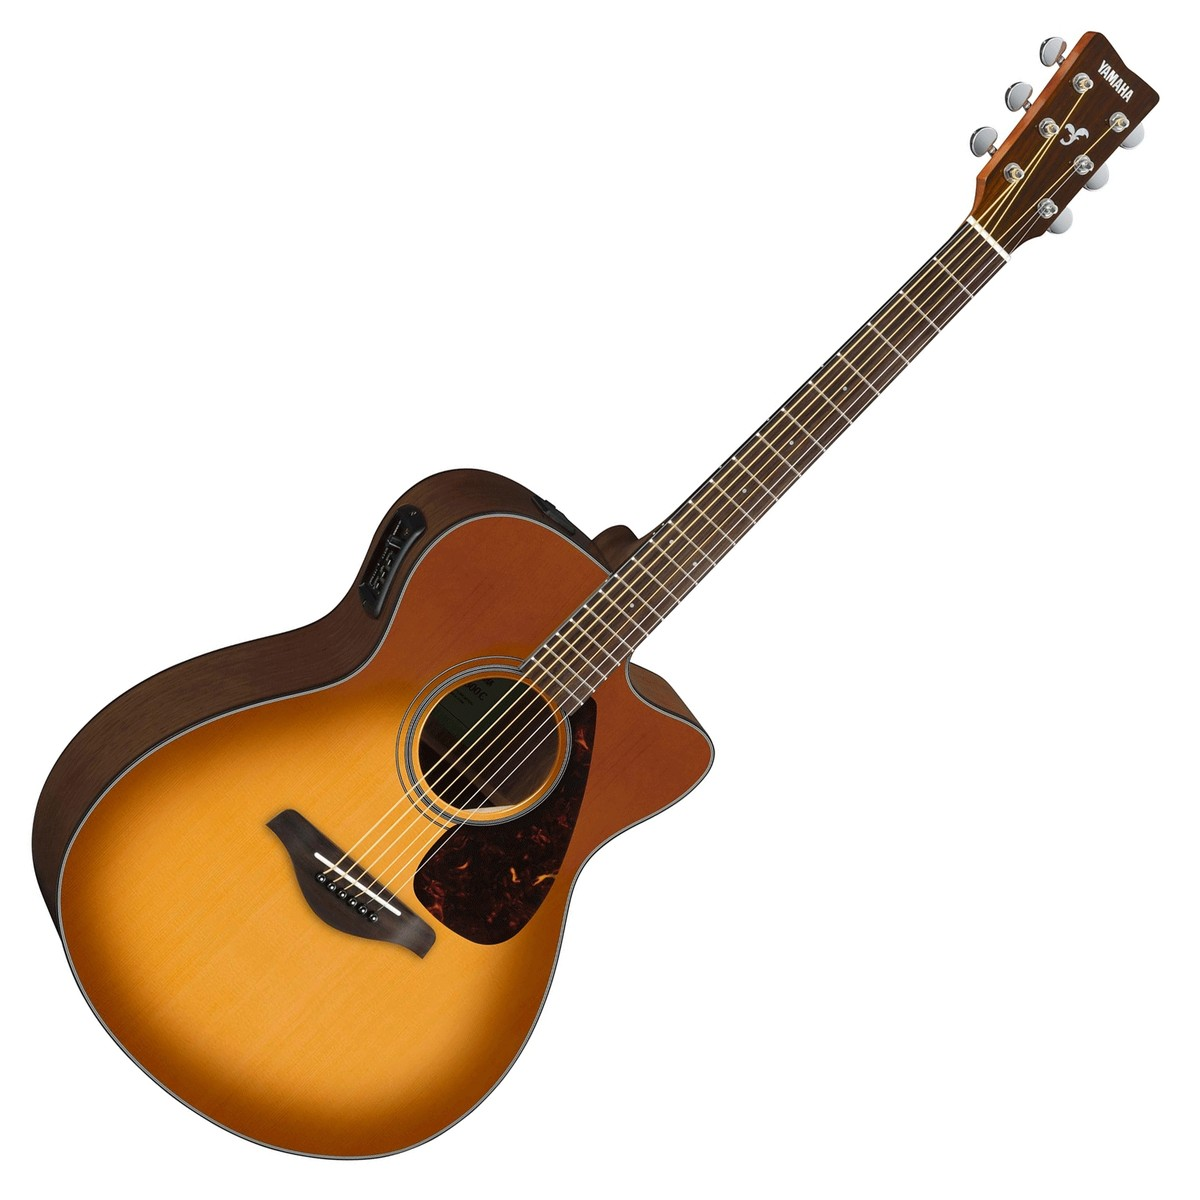 Yamaha fsx800c electro acoustic guitar sandburst at for Yamaha classic guitar